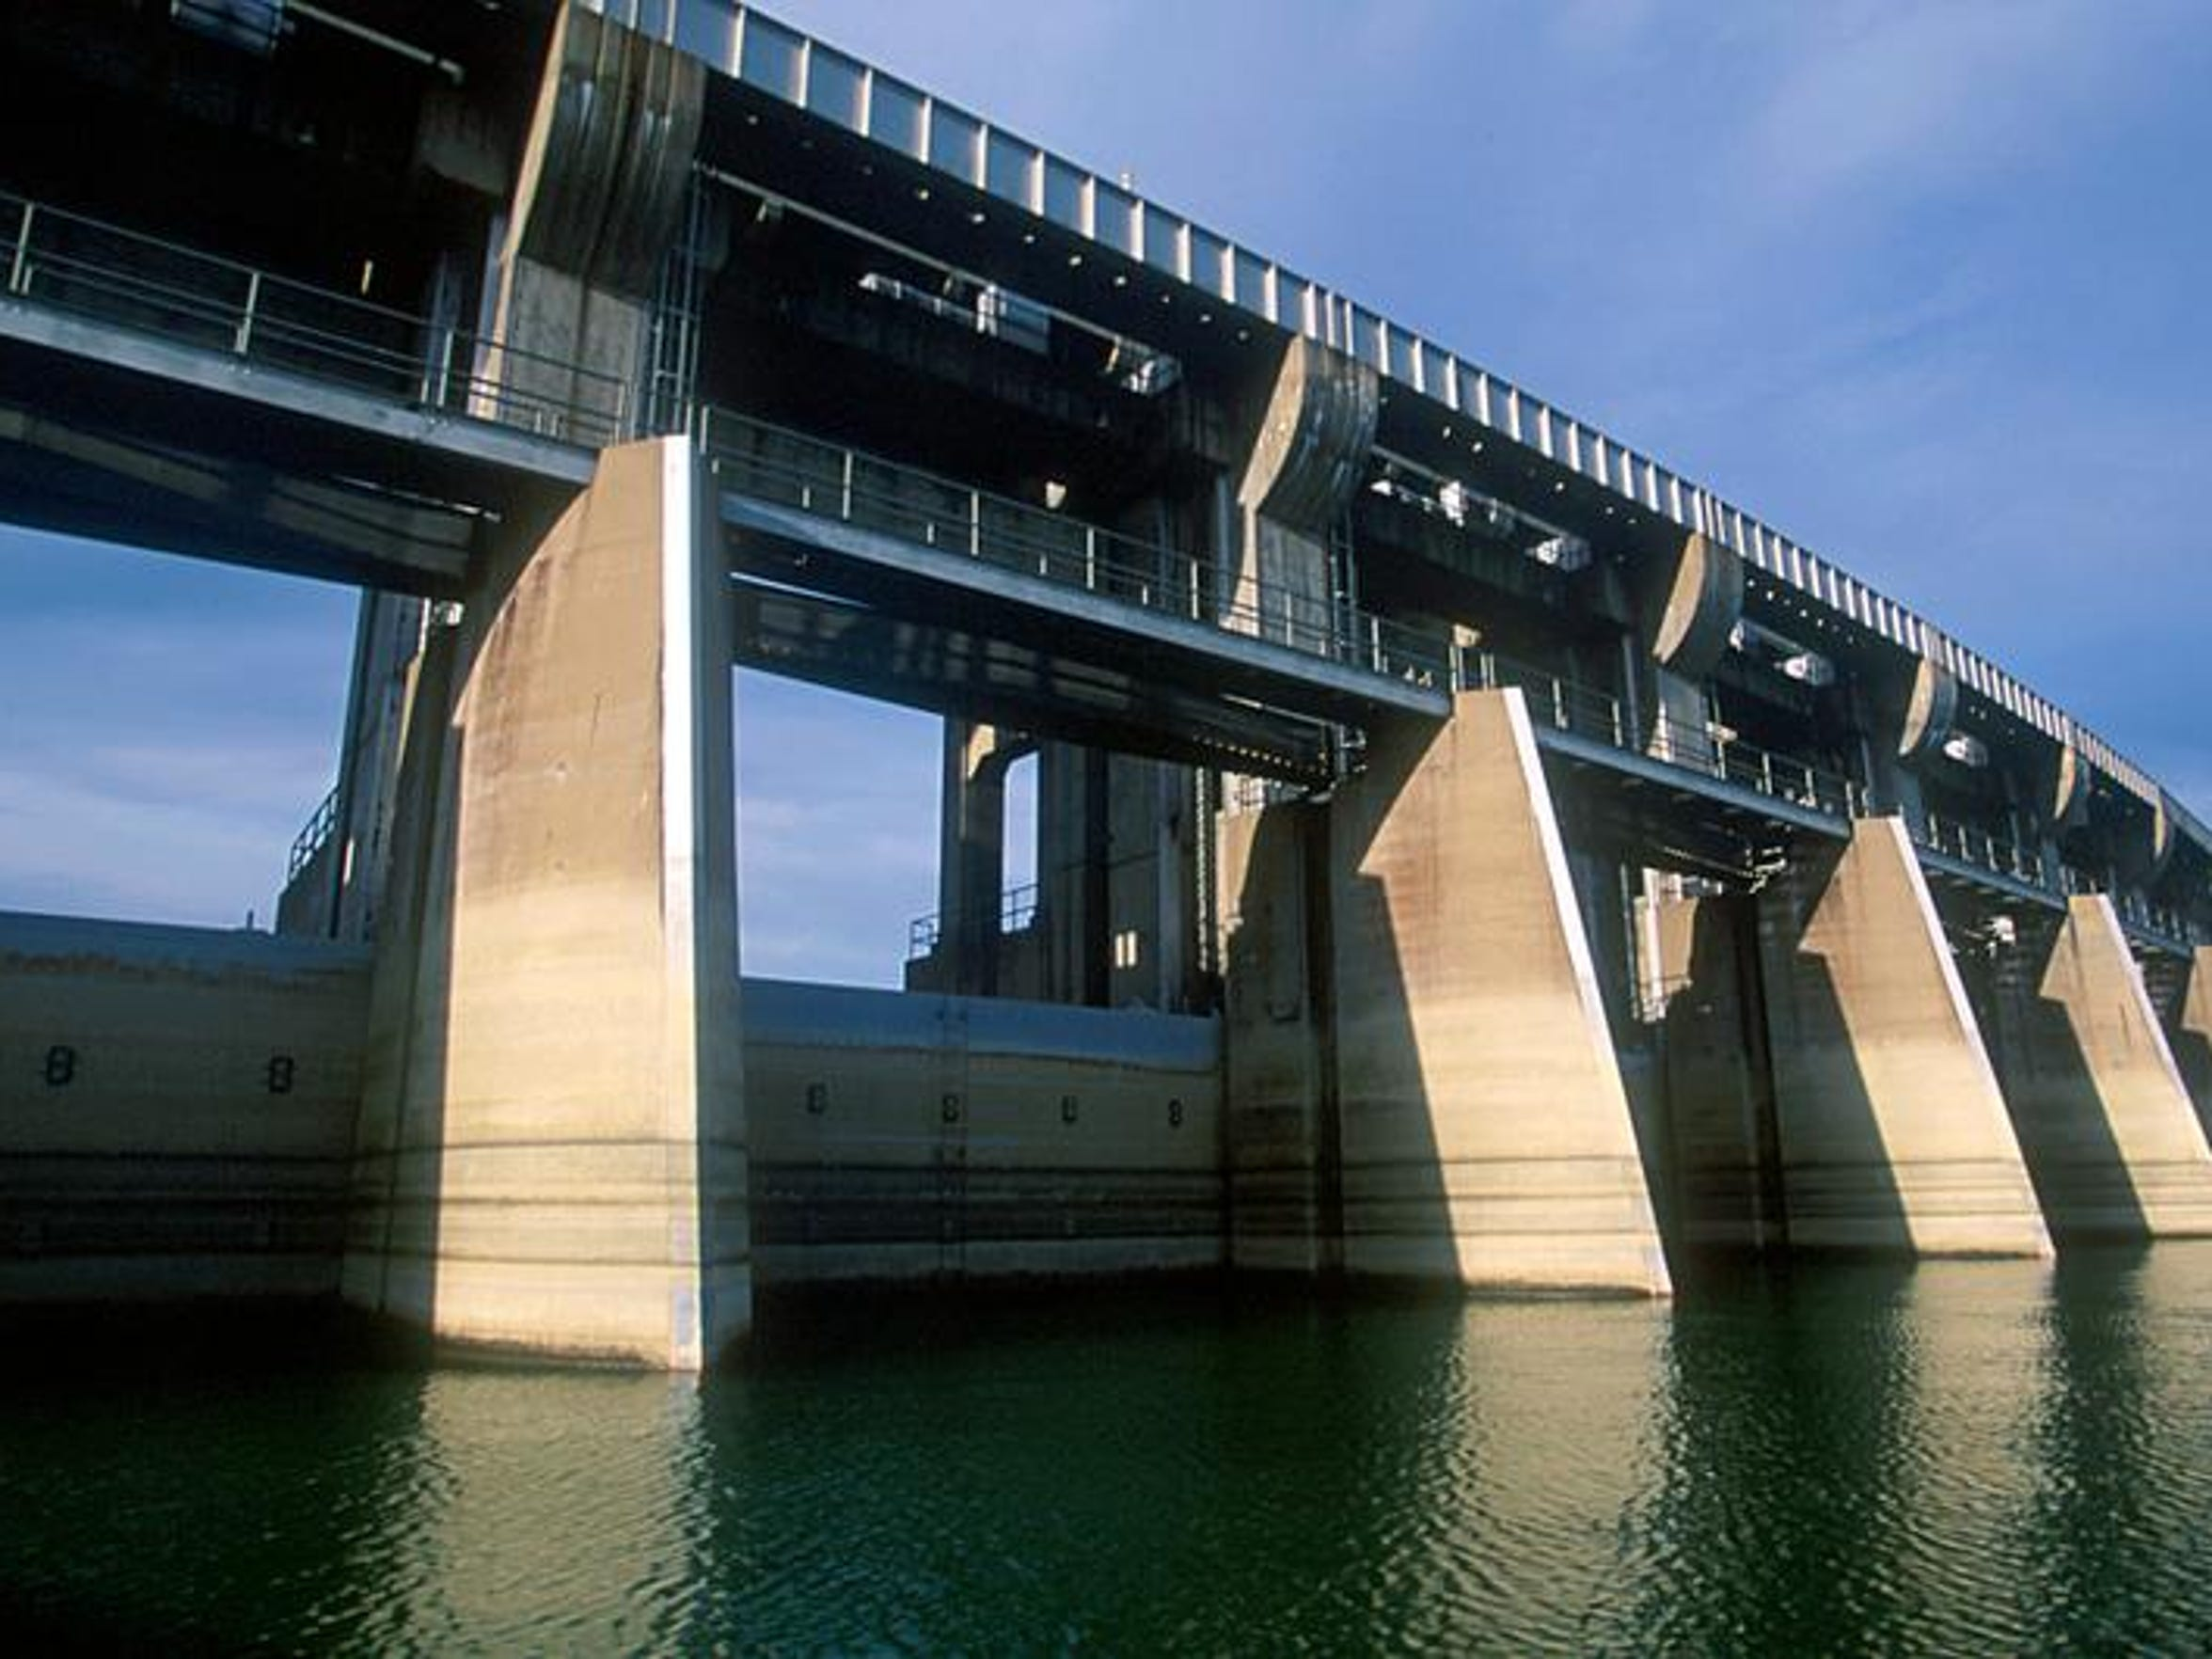 2. Drive over the Fort Peck Dam.